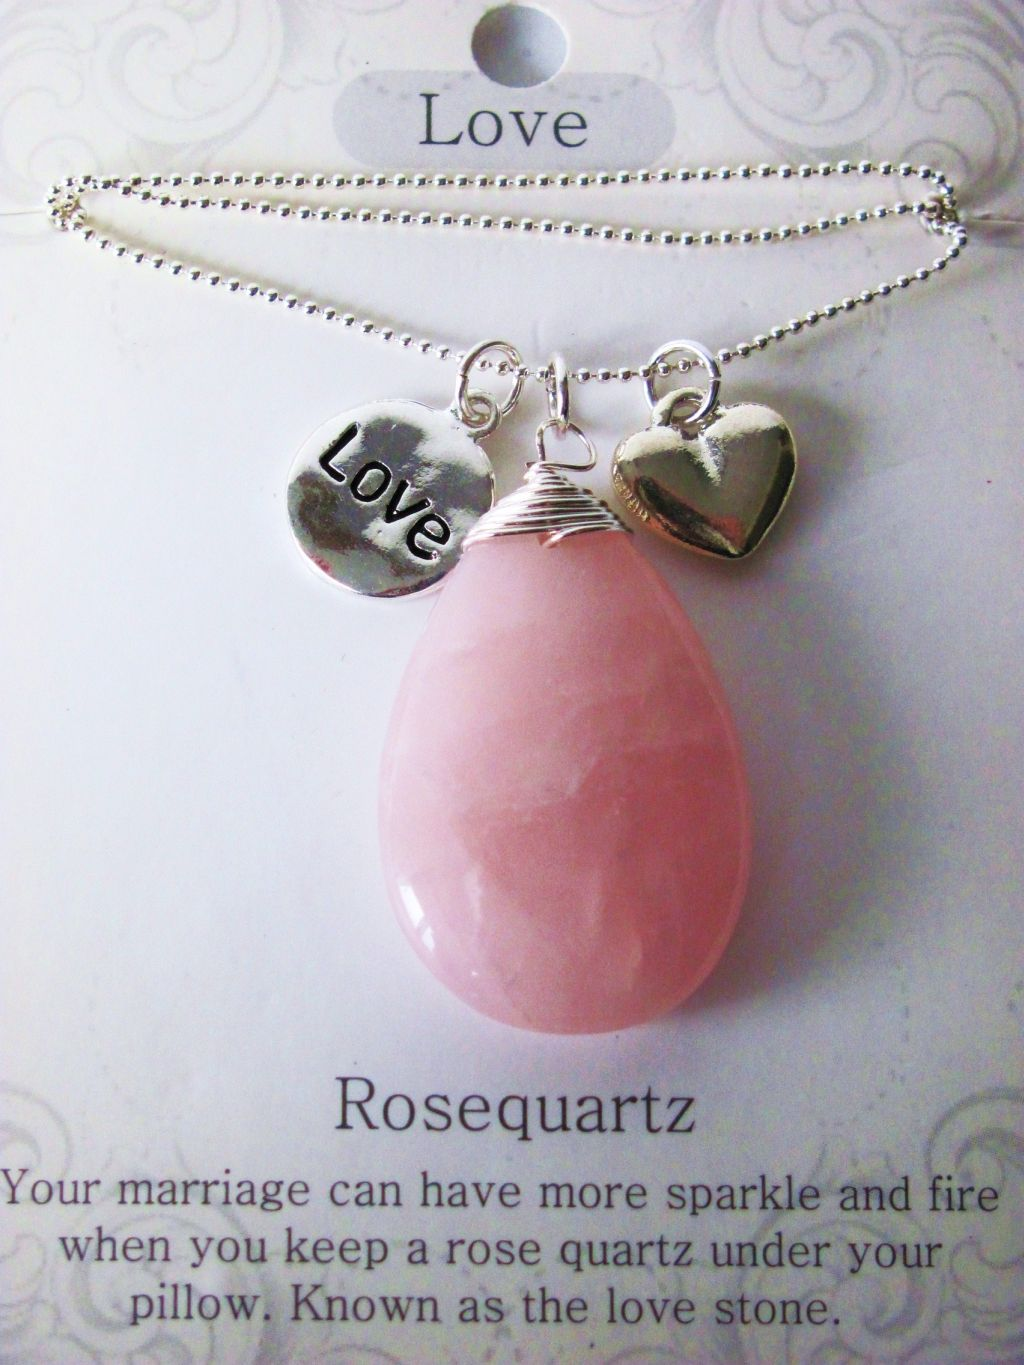 Love Stone Genuine Rose Quartz Tear Drop Pendant Necklace with Charms